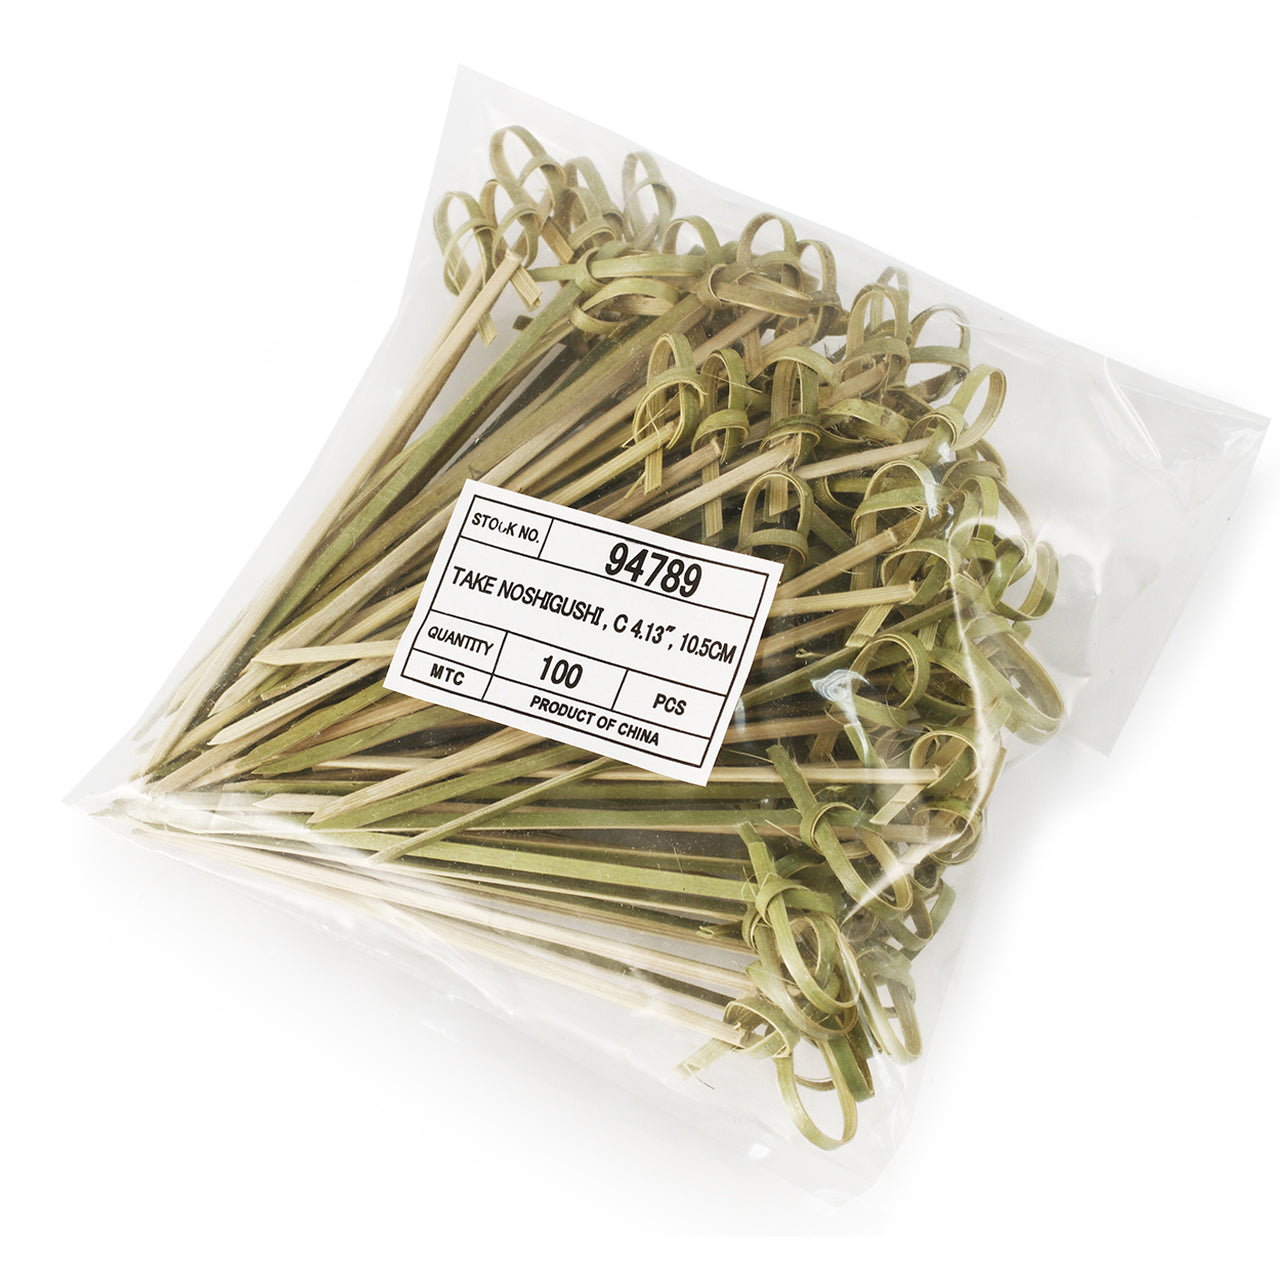 "Knotted Bamboo Skewers (100 pcs/pk) - 3.5"" (cm) (SKU: 94036)"